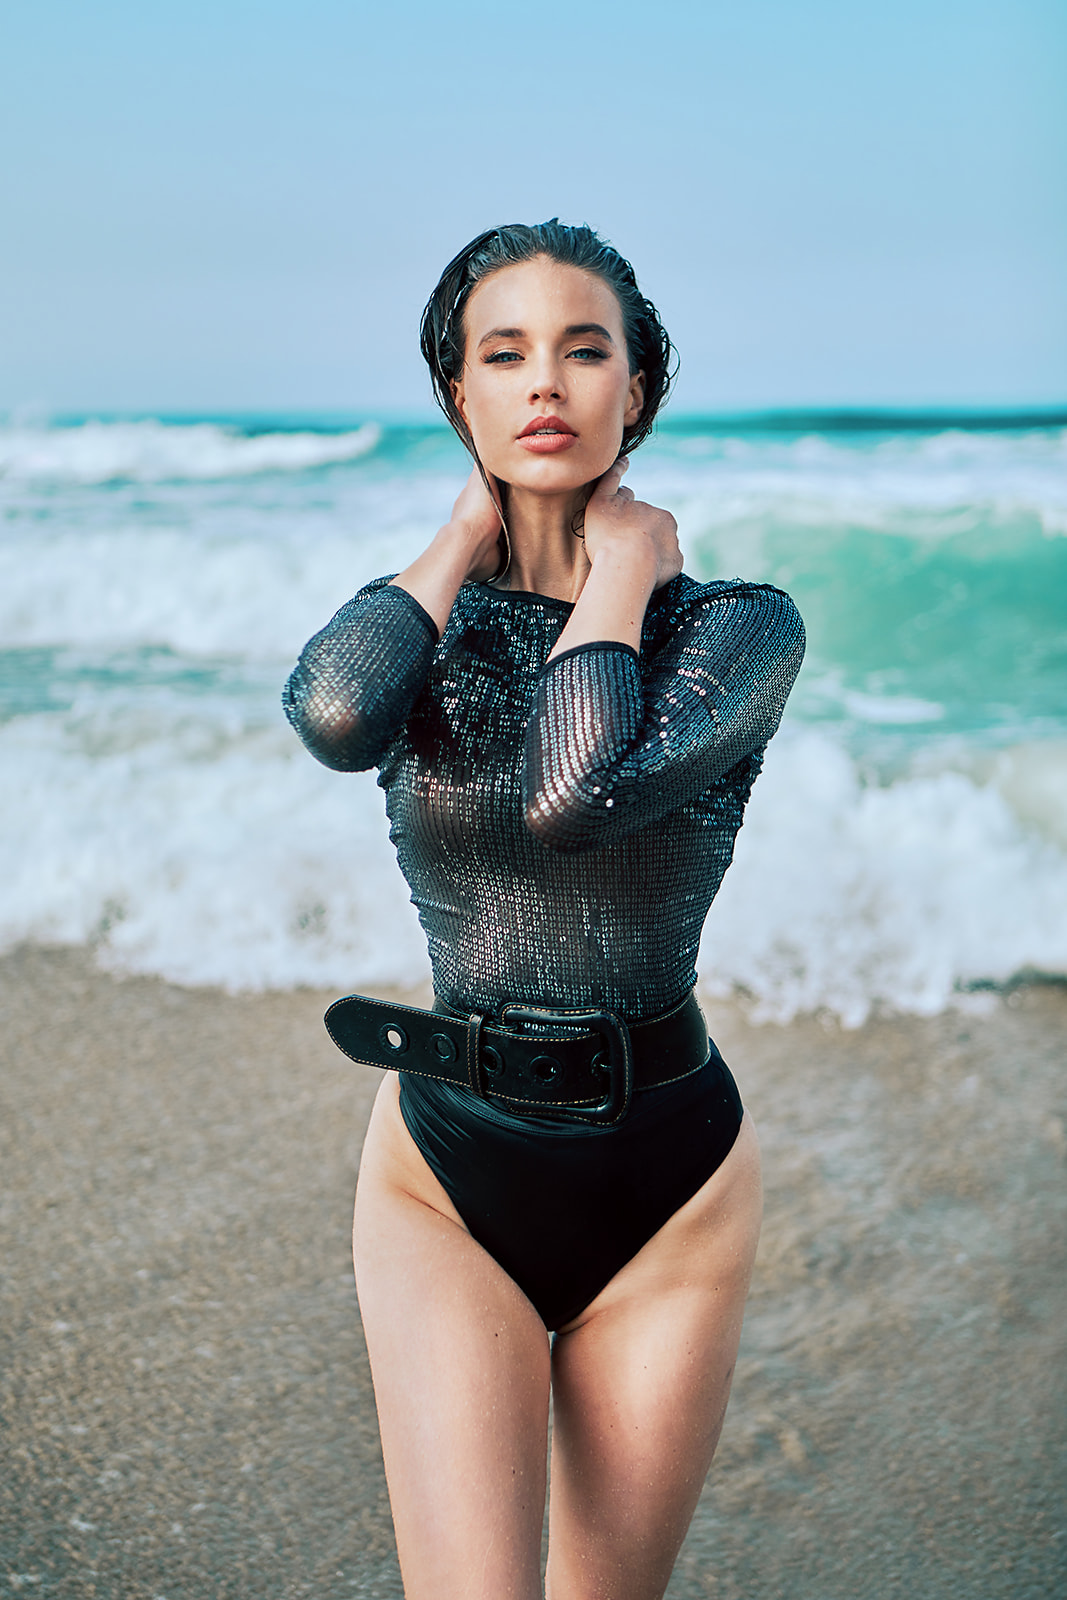 Model Egith Van Dinther aka Iggy Van D poses in the ocean wearing a sheer sequin long-sleeve Free People top and black bikini bottoms for New Face Fashion Magazine by photographer Patrick Patton